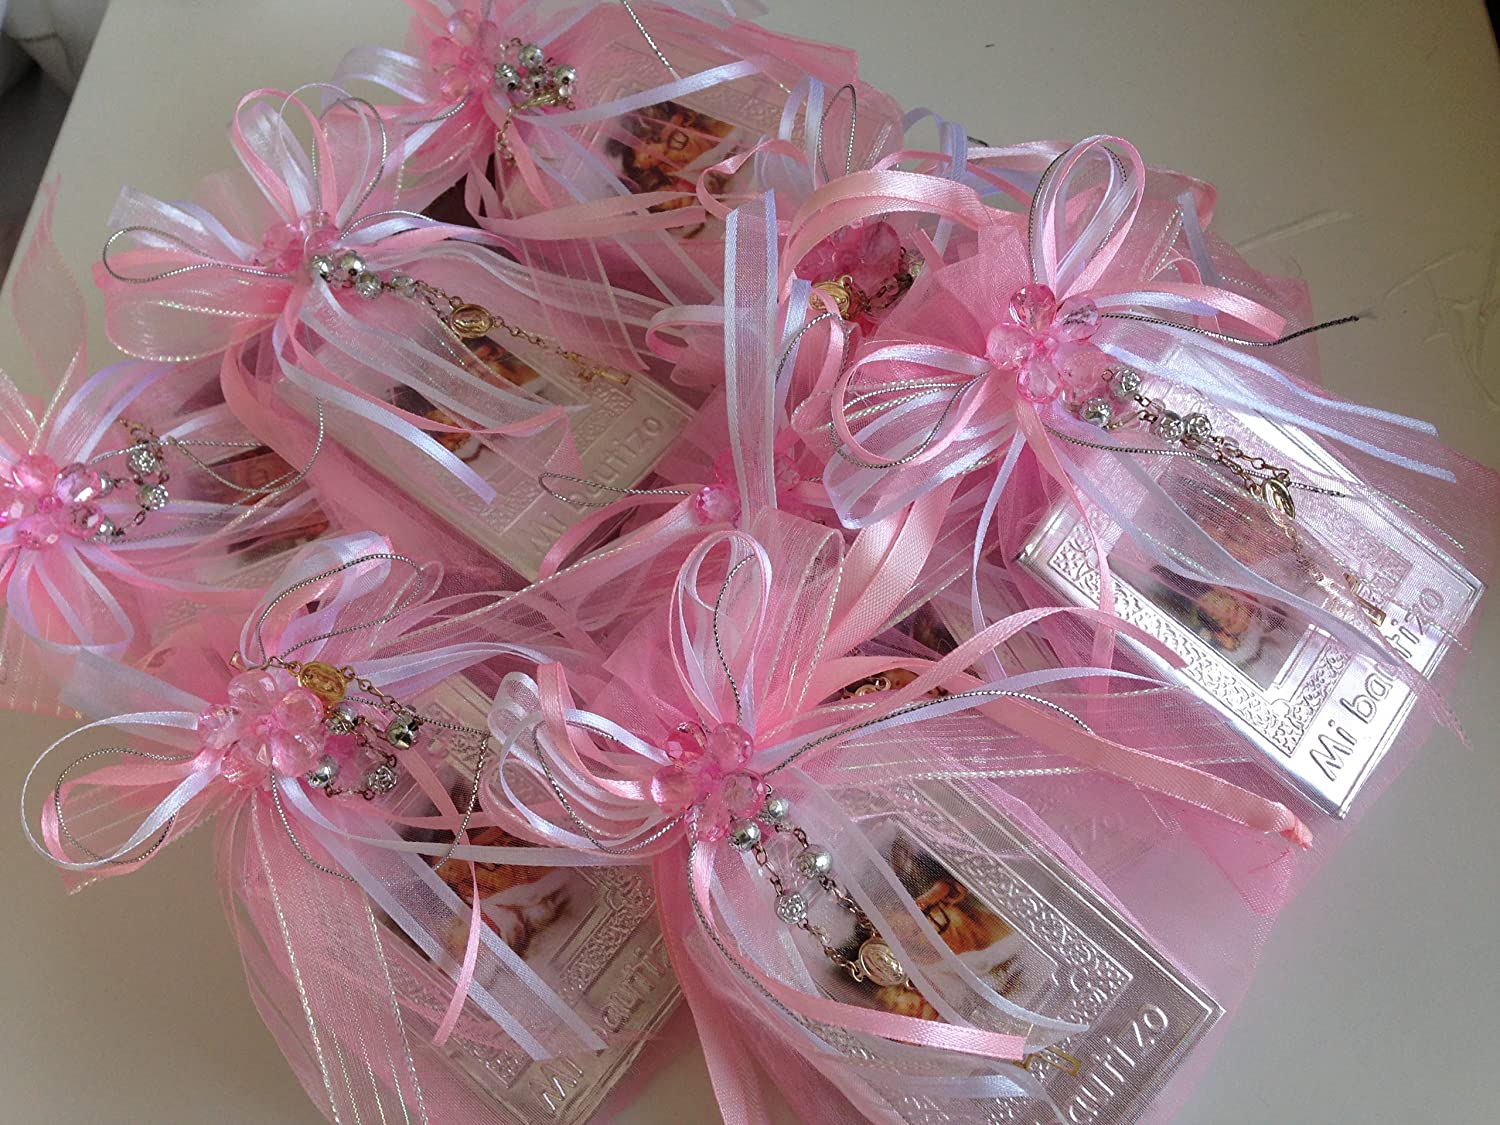 Amazon.com : Baptism Favors Baby Pink 12pc / Prayer Books Covered in ...